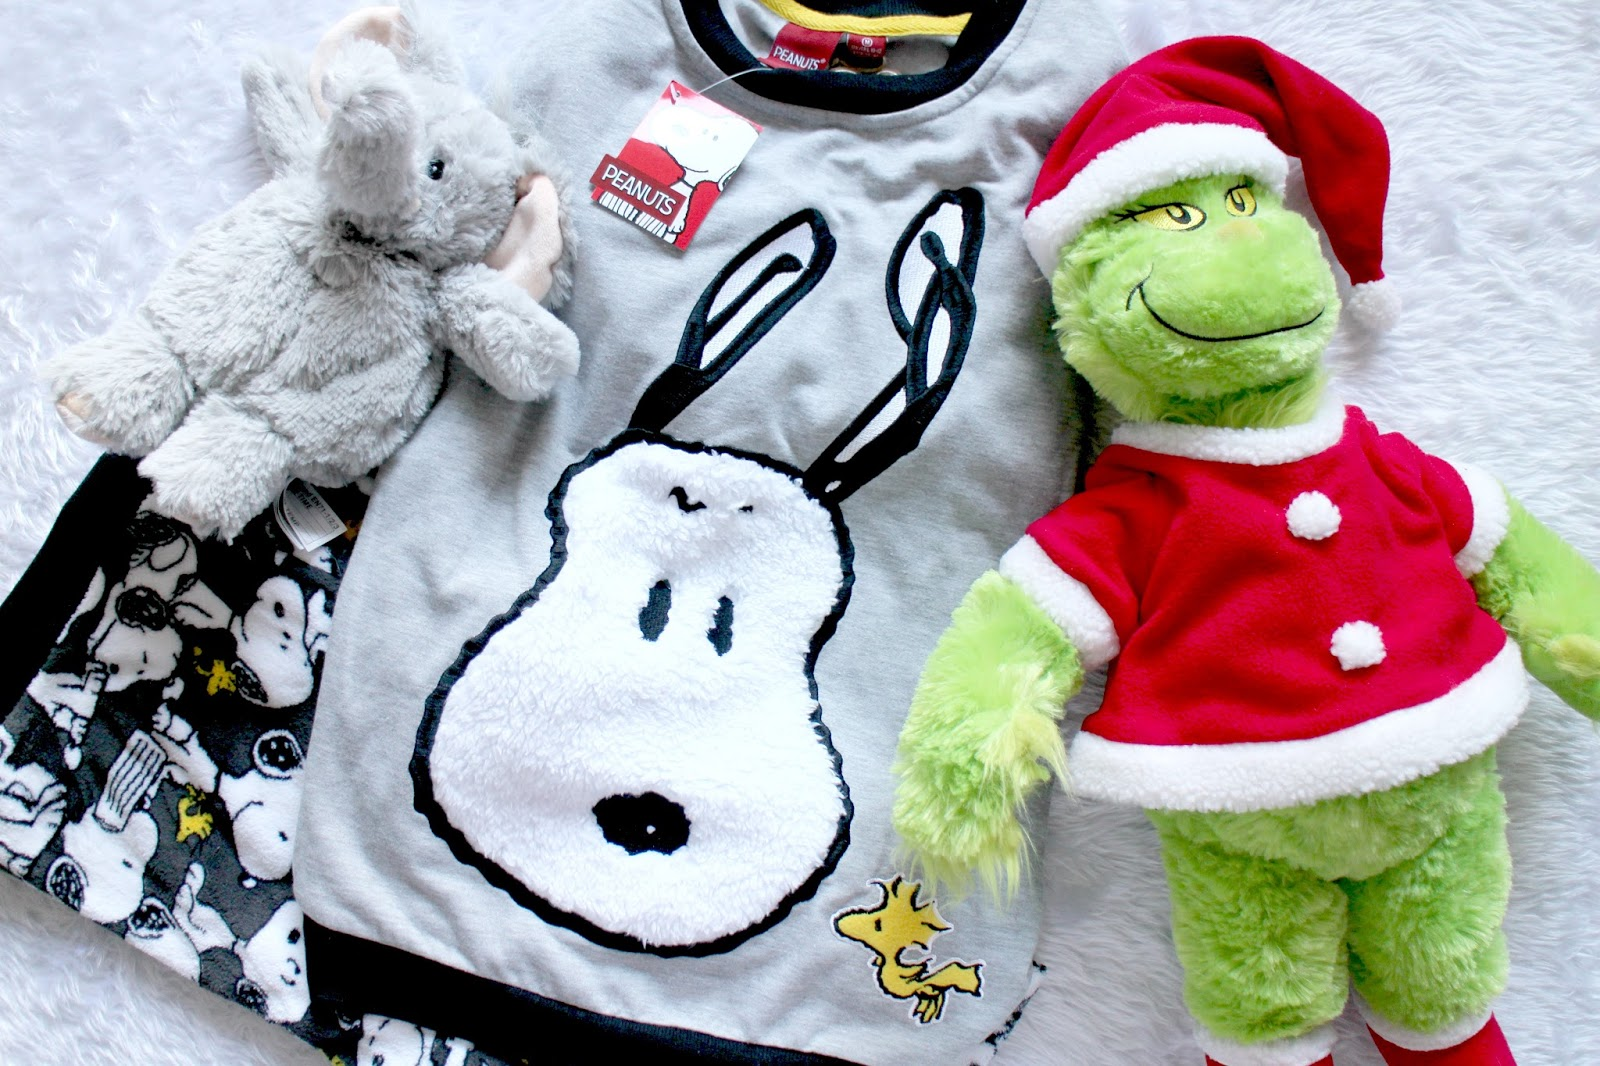 Primark Snoopy Pyjamas The Grinch Build-A-Bear